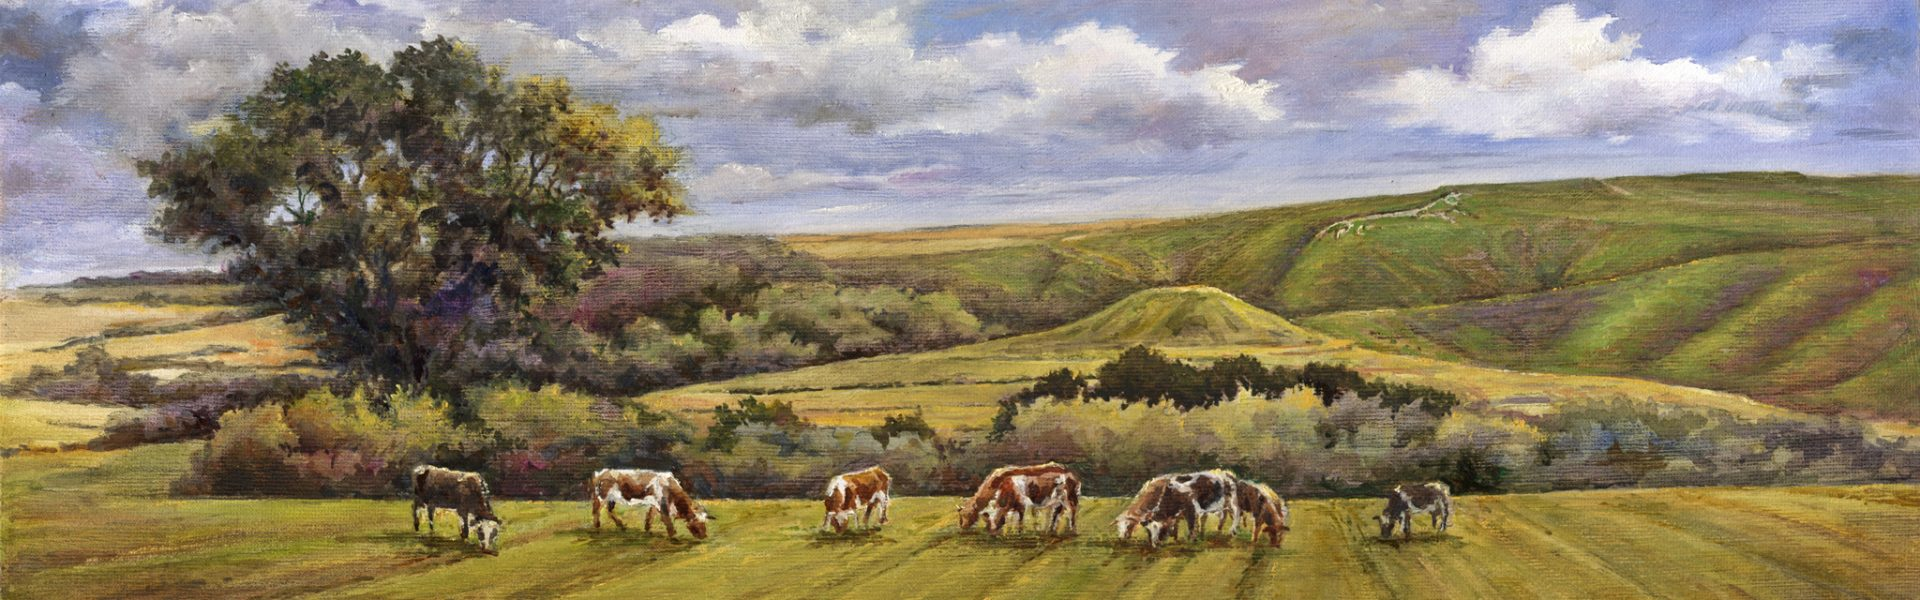 White Horse Hill, Uffington 50x20cm £180 framed